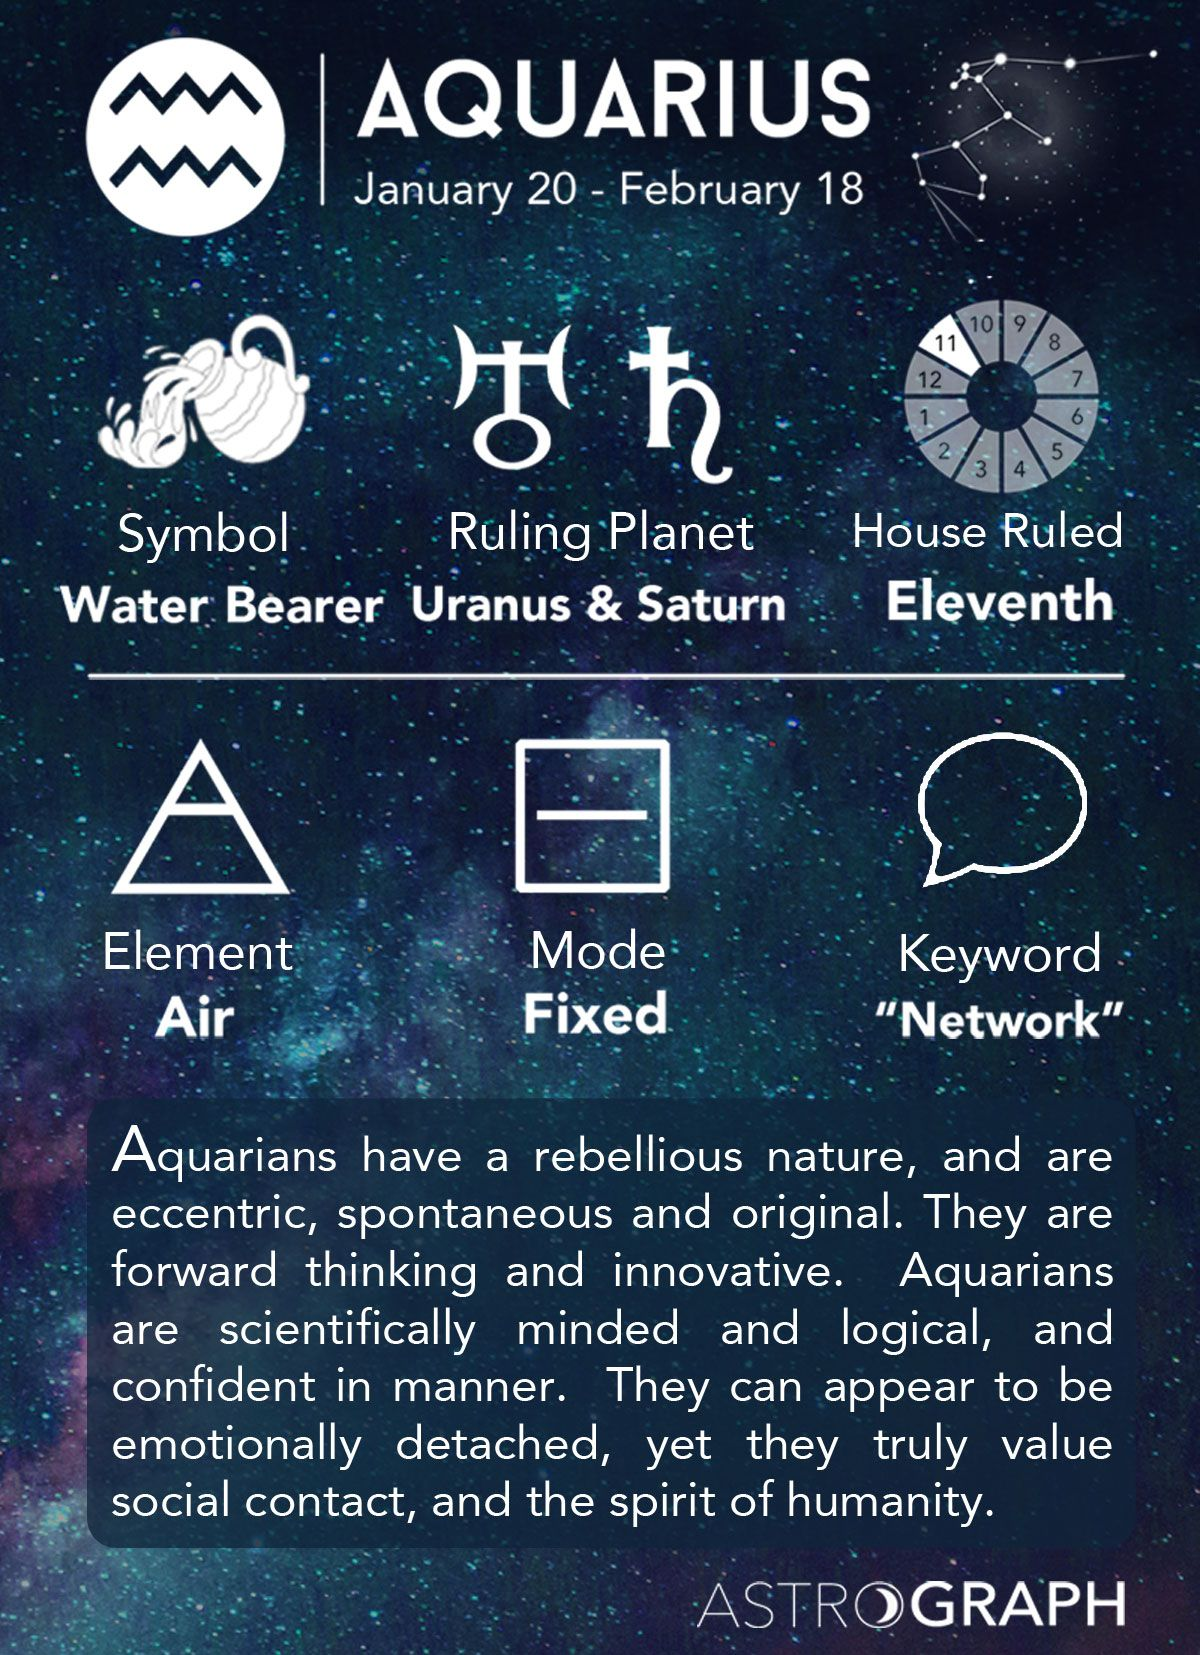 Aquarius Cheat Sheet Astrology Aquarius Zodiac Sign Learning Astrology Astrograph Astrology Software